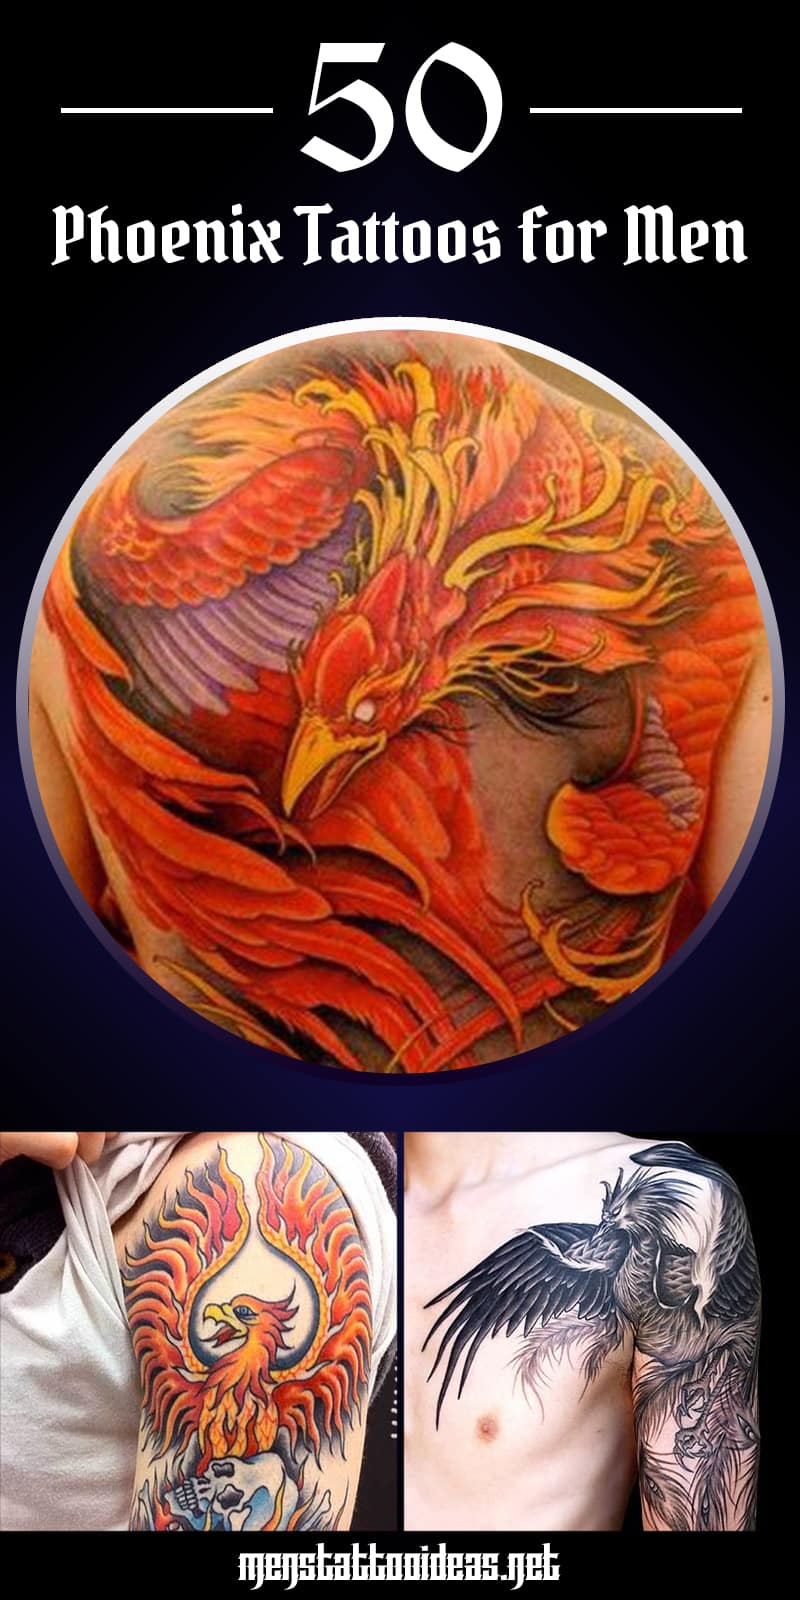 943b73a3d Symbolic Meanings of Phoenix Tattoos for Men